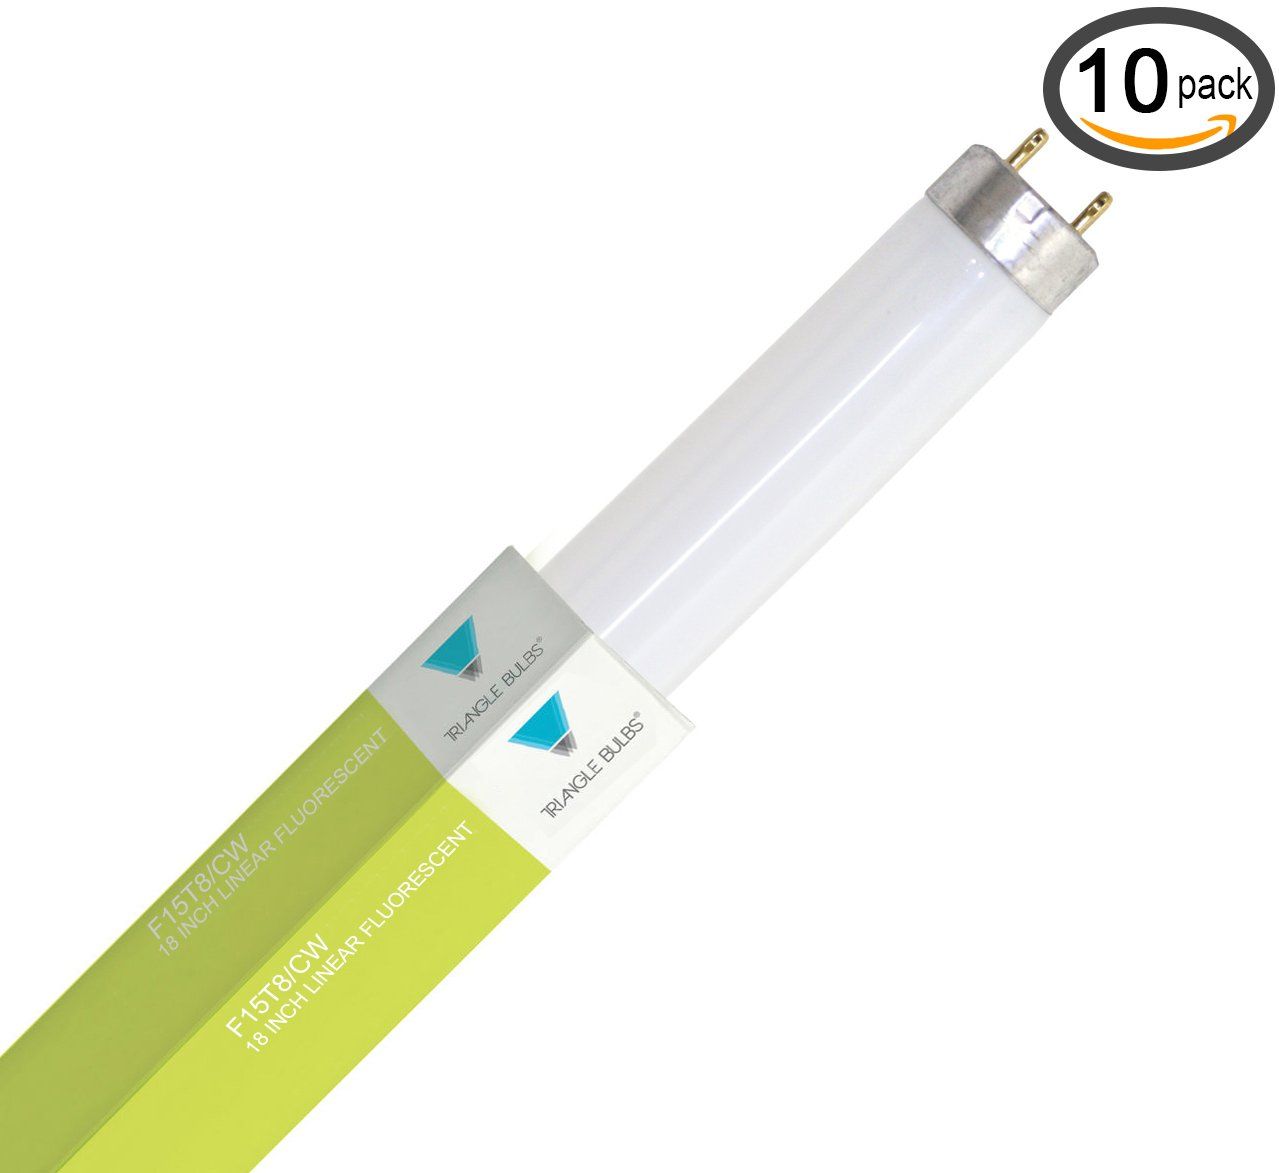 (Pack of 10) F15T8/CW 15-Watt Straight T8 Fluorescent Tube Light Bulb, Cool W...